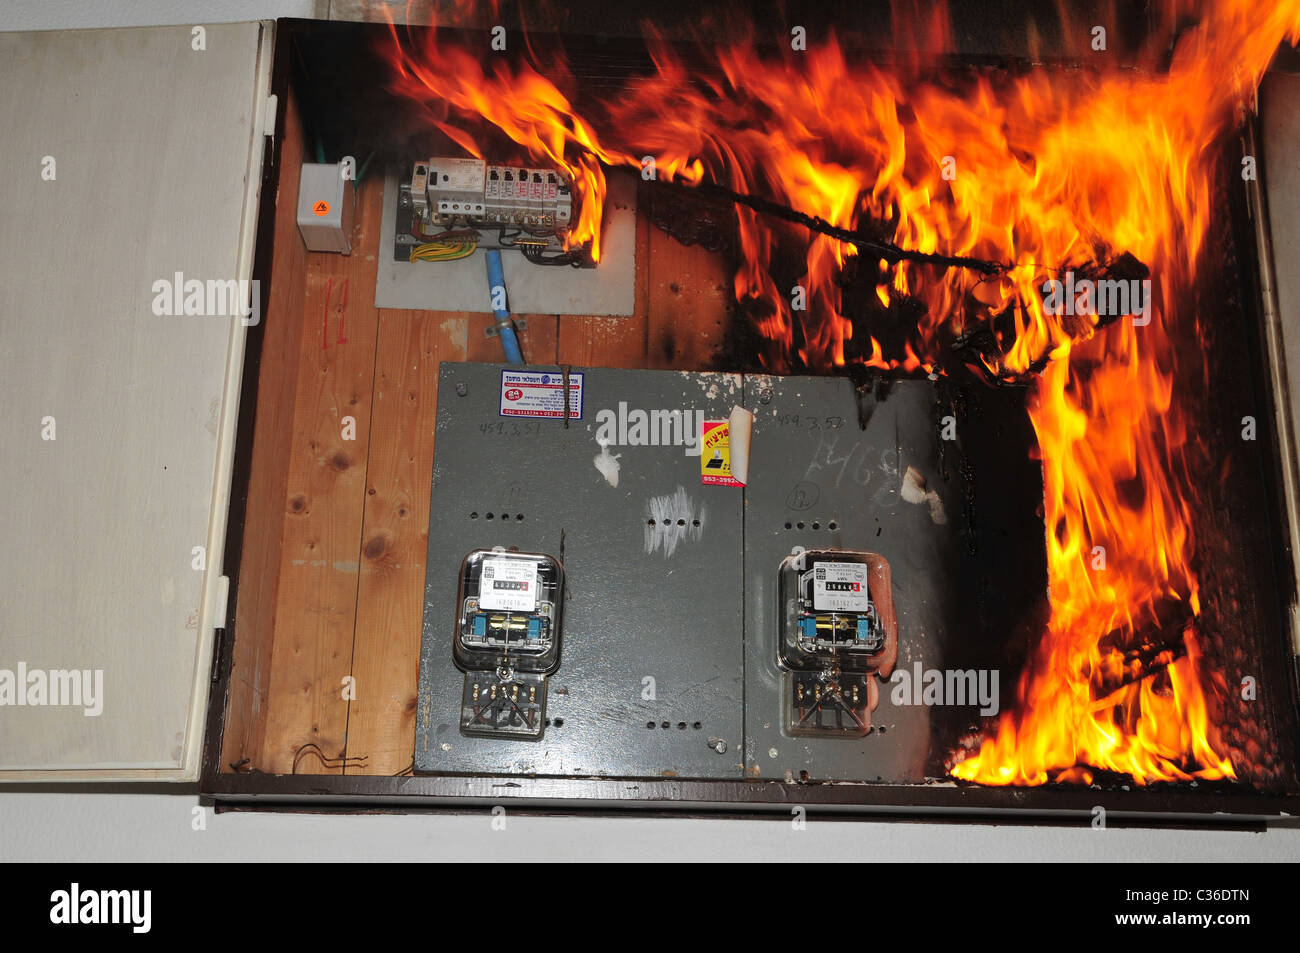 Fuse Box Fire Wiring Diagram Home Household Electrical Diagrams Relay In Fires From Water